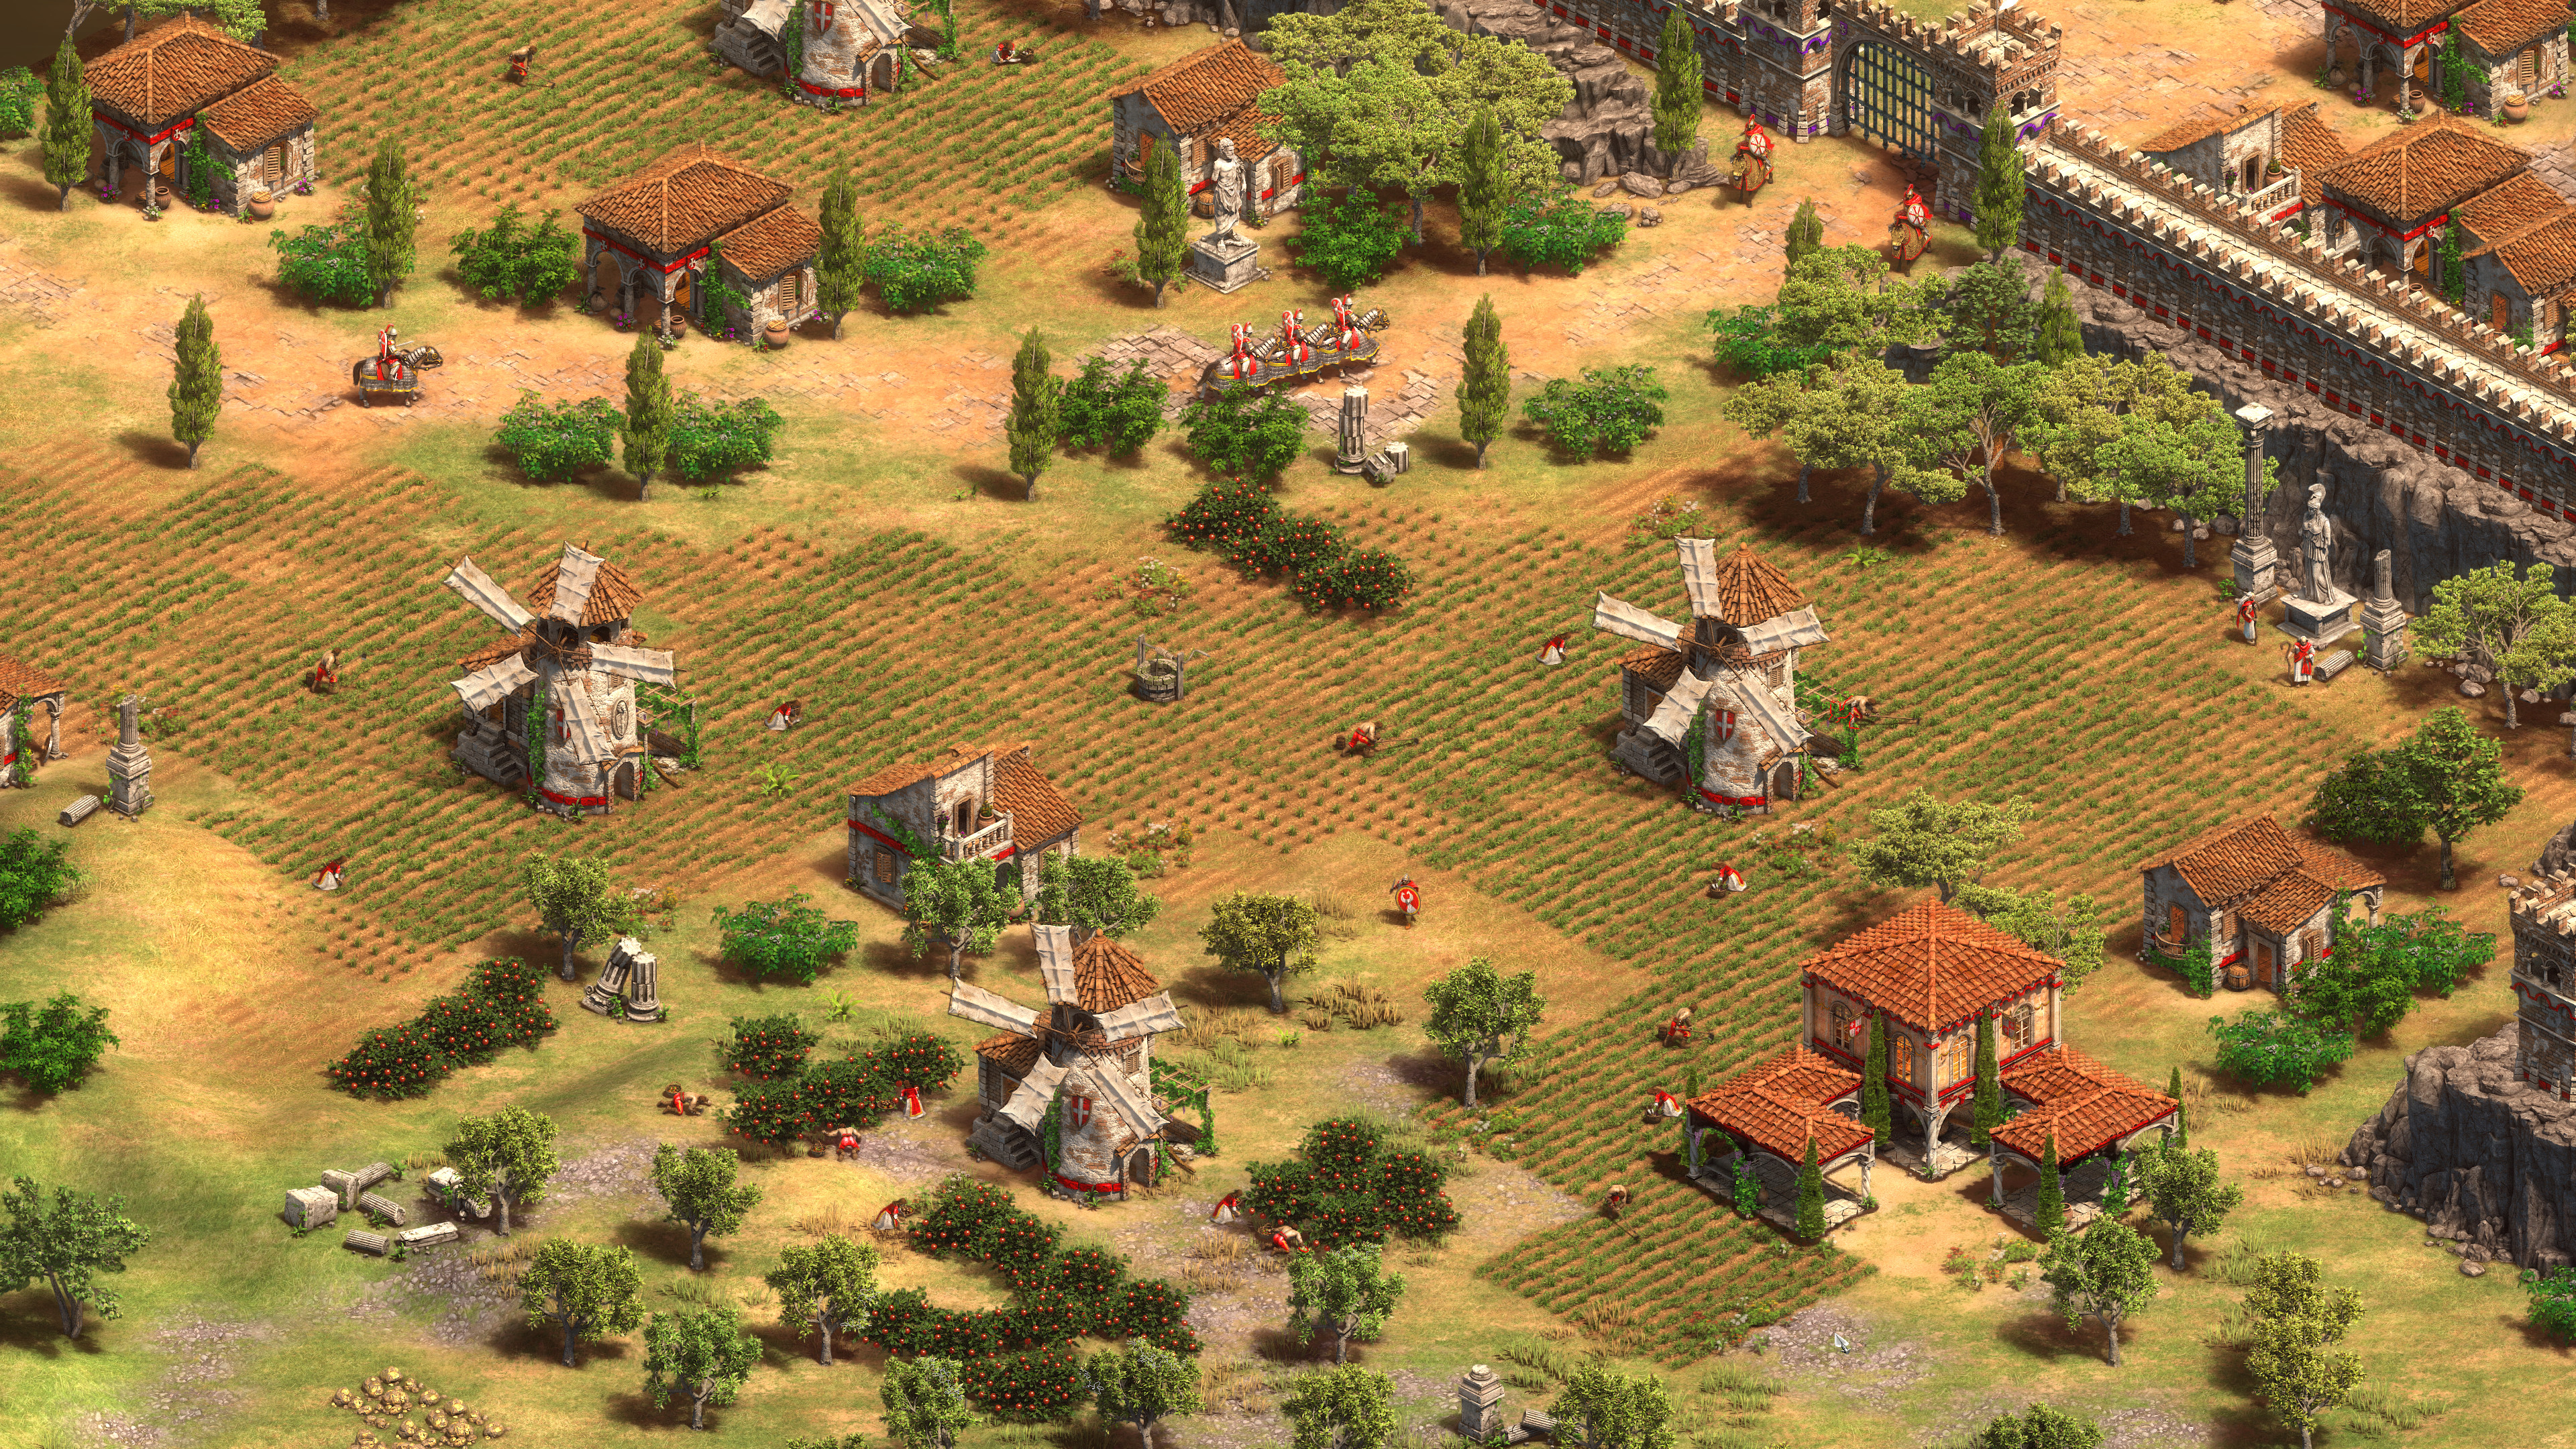 Age of Empires II: Definitive Edition (RUS ENG) [RePack] от R.G. Механики